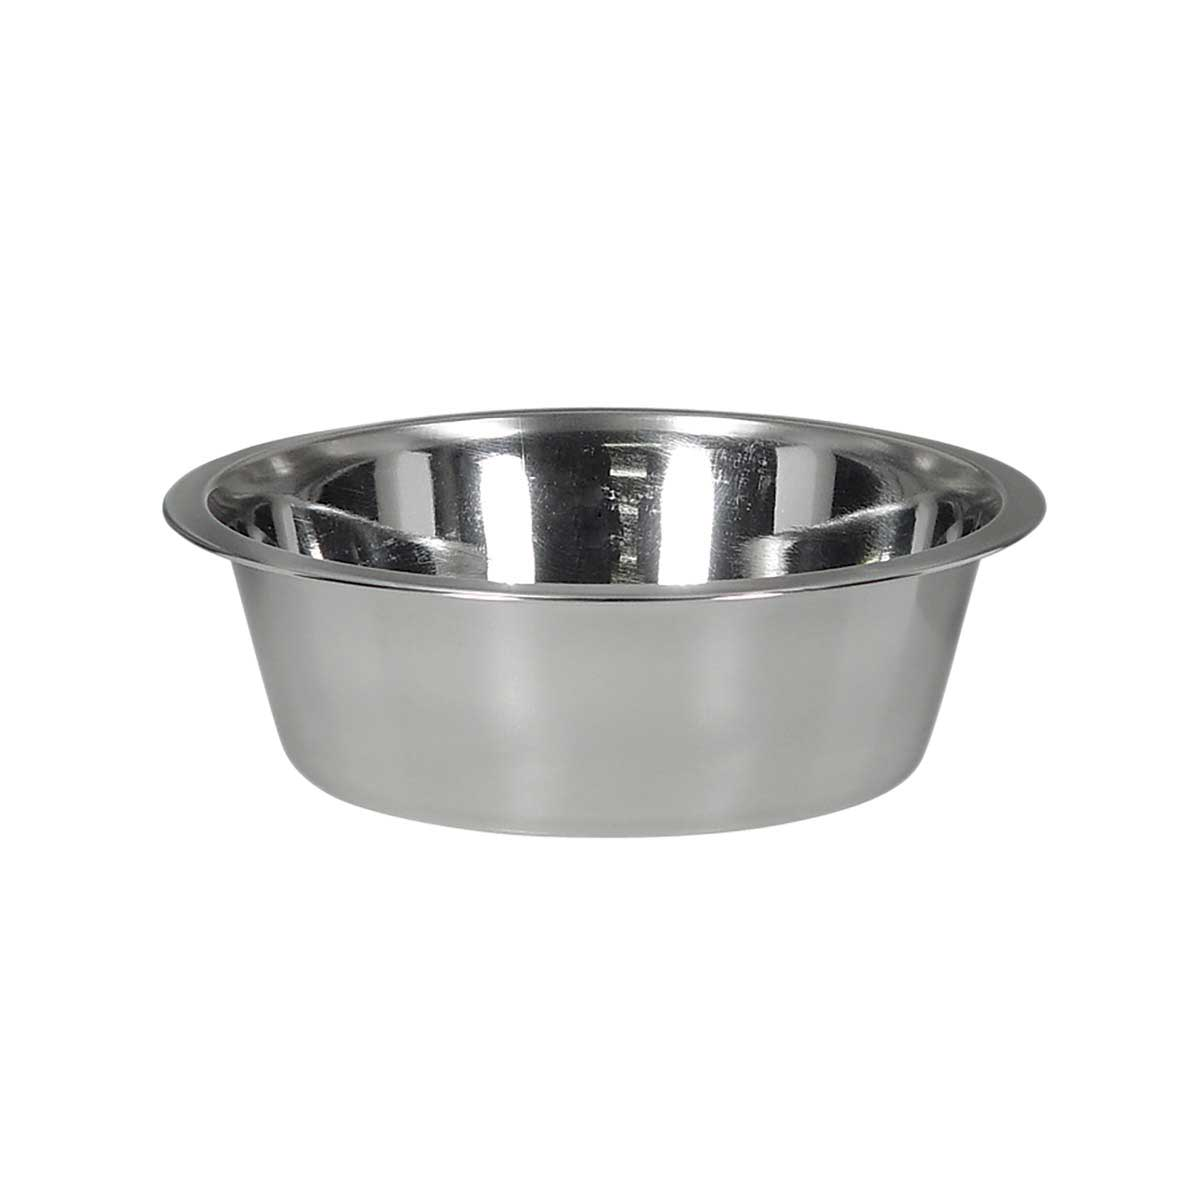 Indipets Stainless Steel Pet Dish 1/2 Pint at Ryan's Pet Supplies